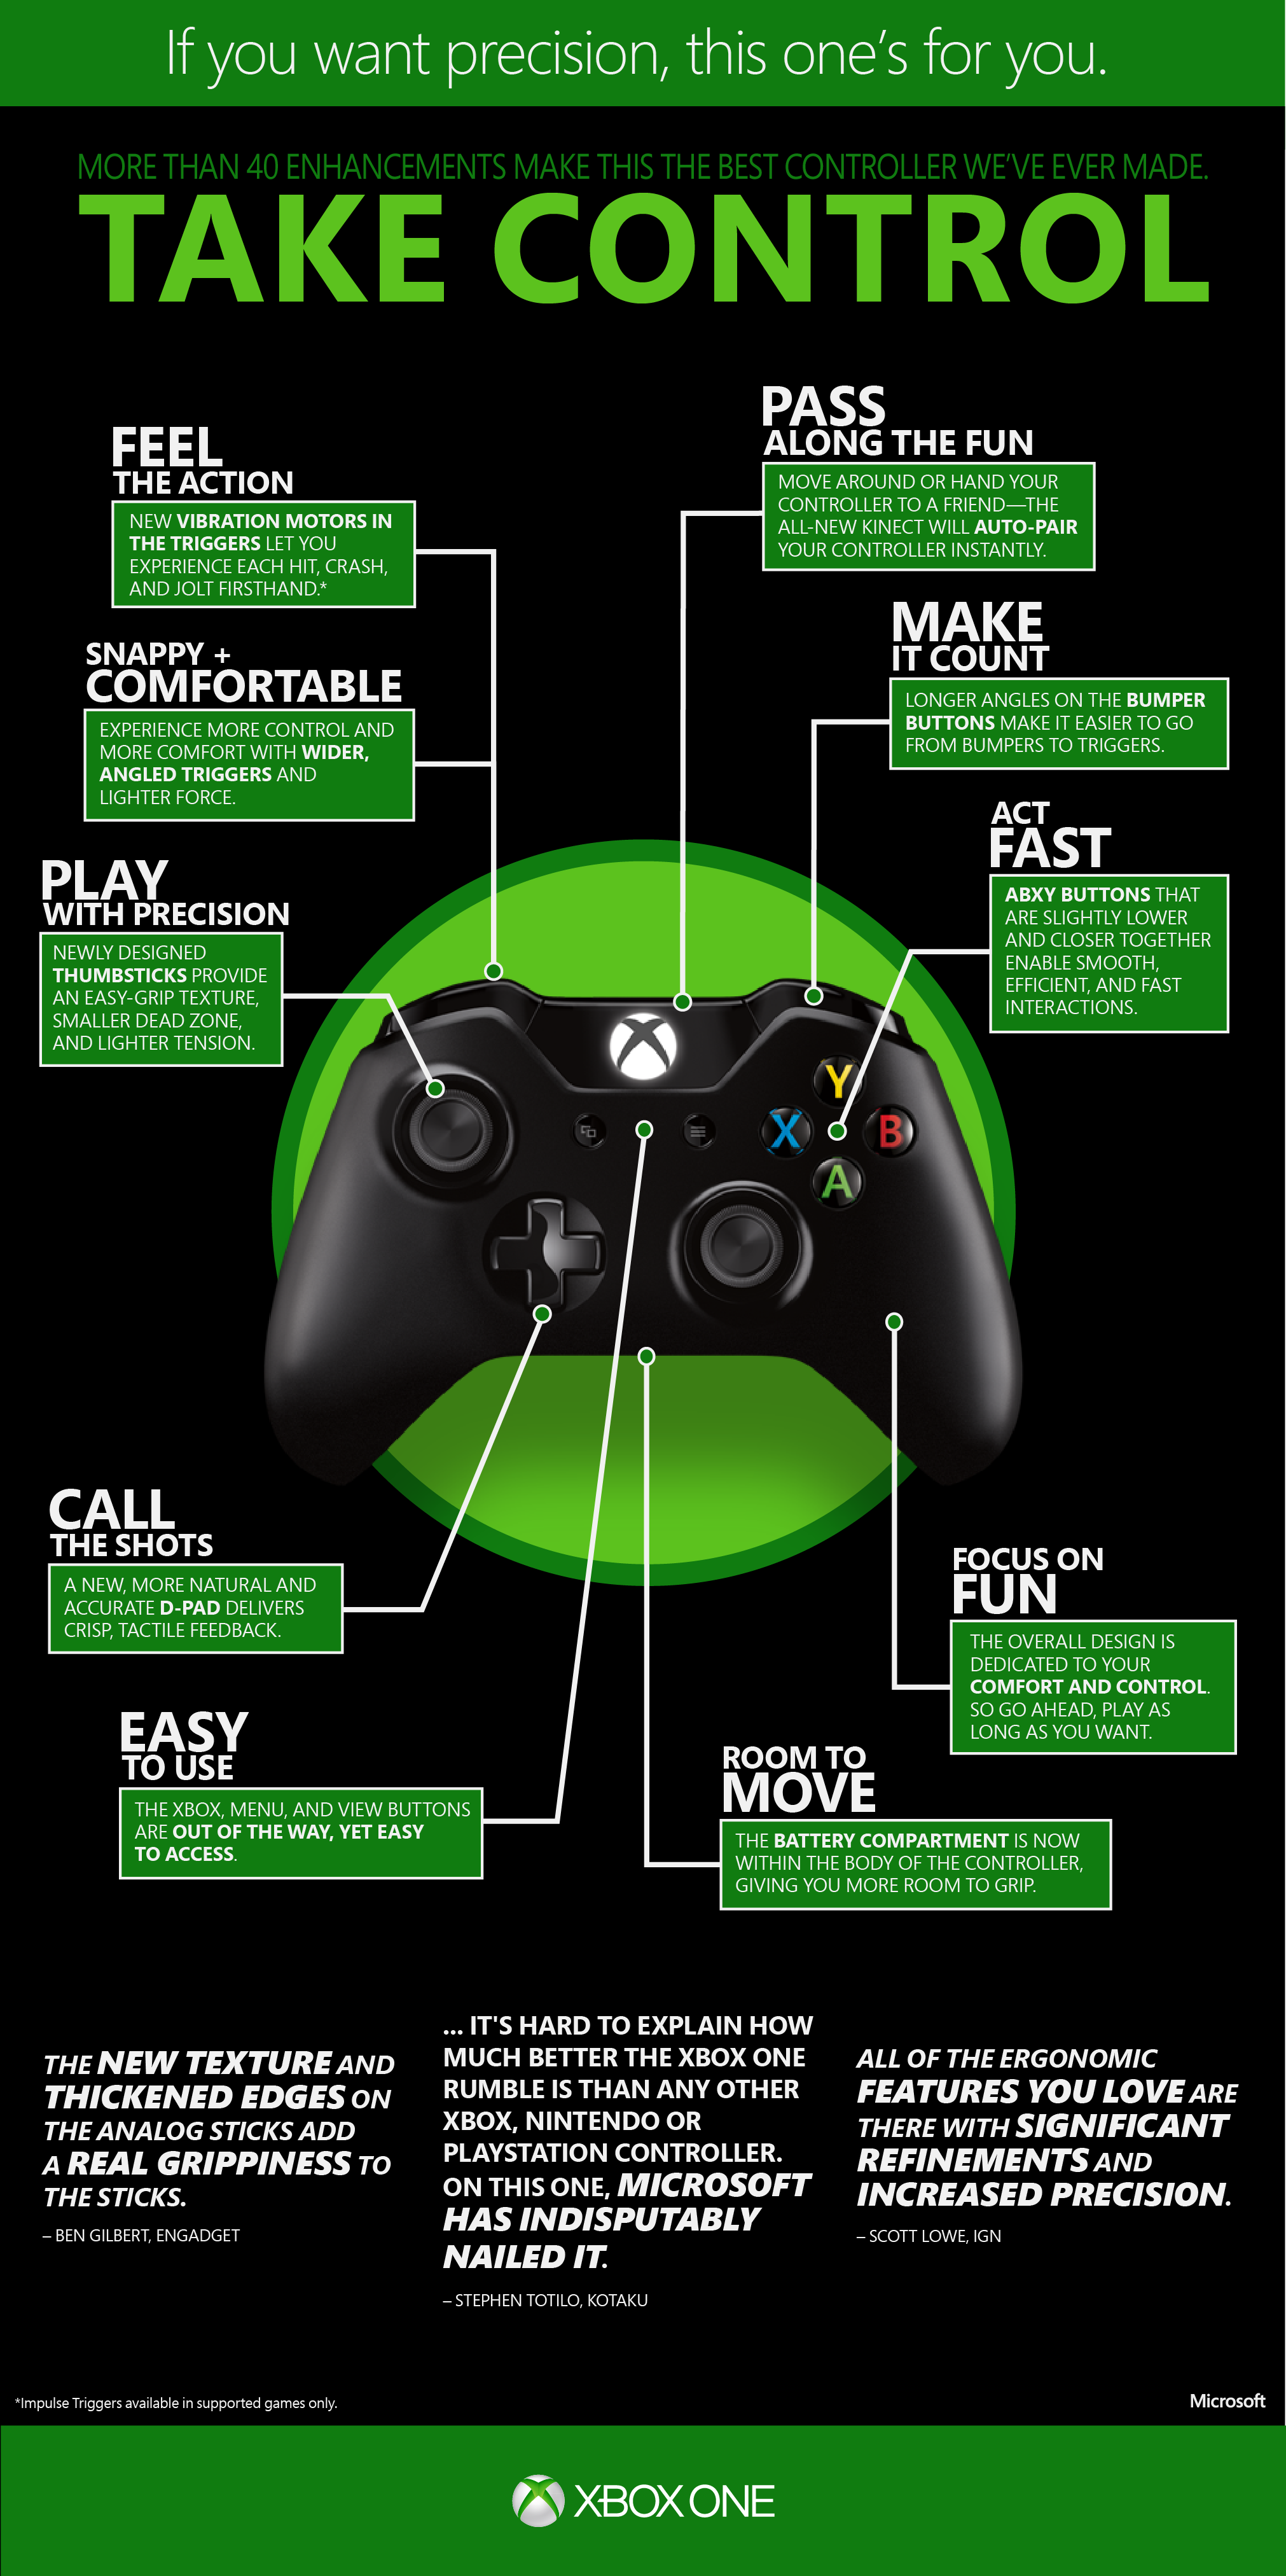 As A Gamer You Know That Your Controller Can Make Or Break A Game With The 40 Enhancements To The New Xbox One Controller Xbox One Controller Xbox One Xbox